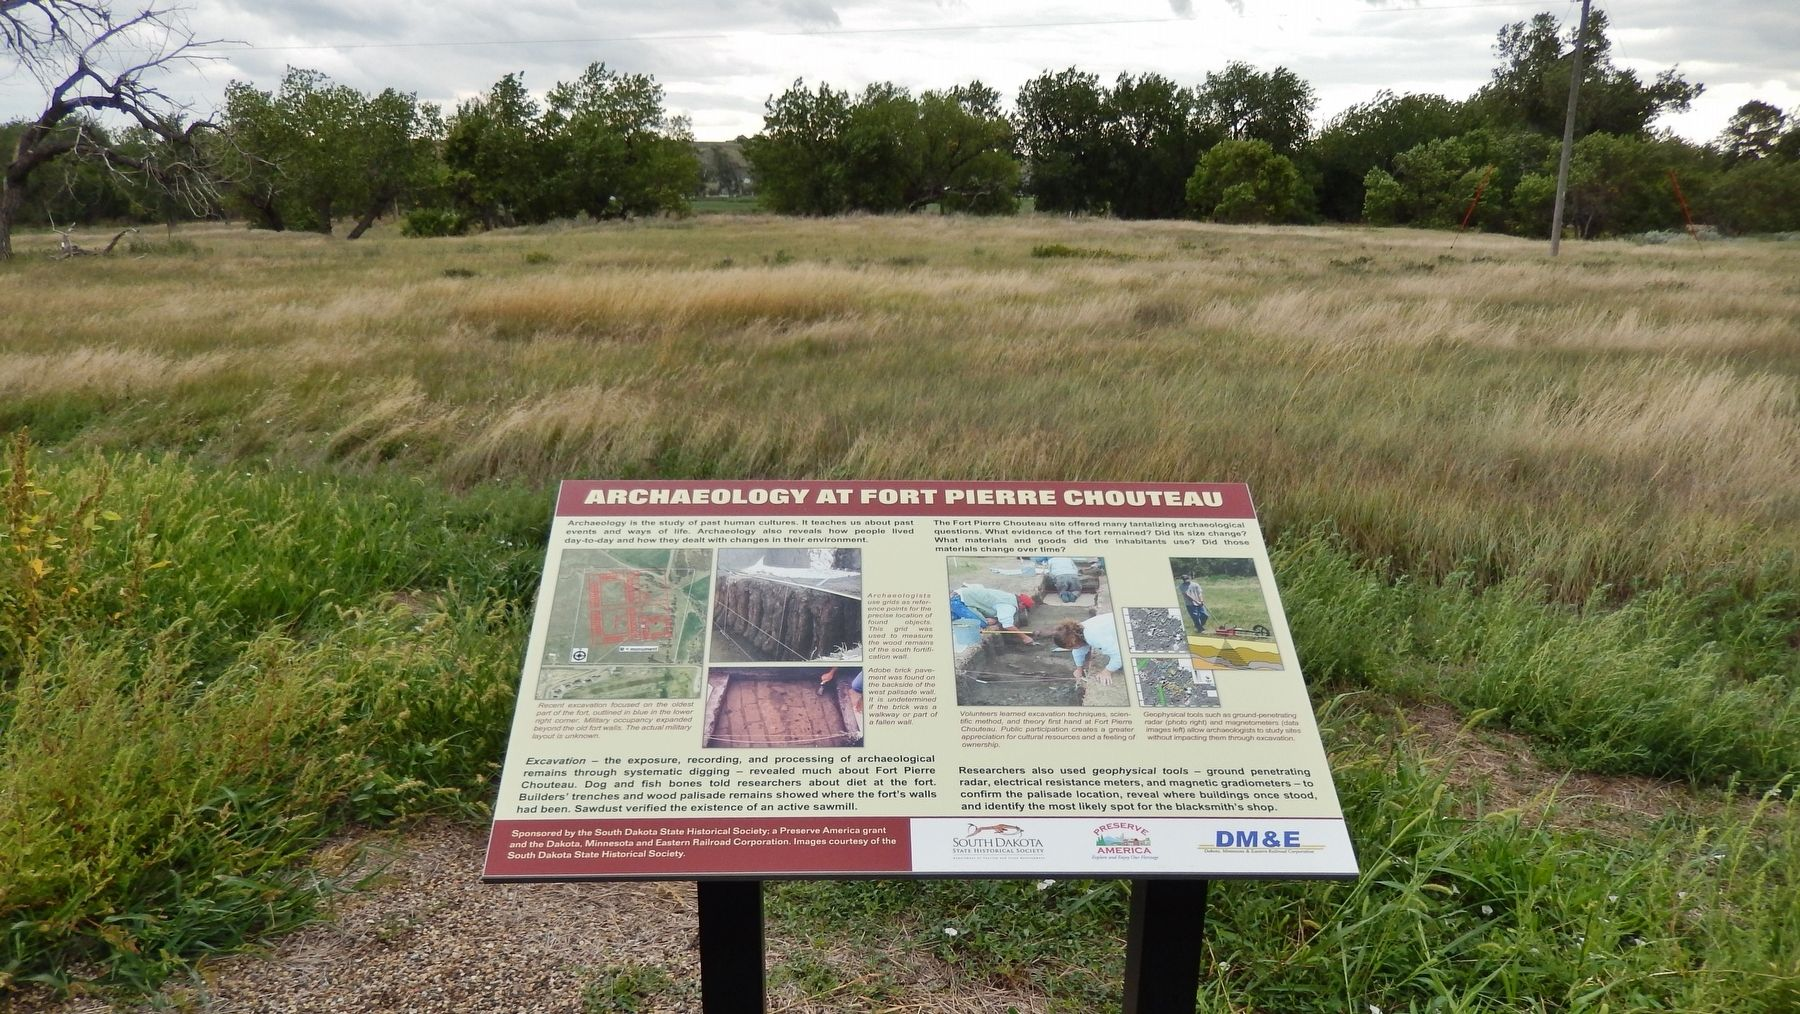 Archaeology at Fort Pierre Chouteau Marker (<i>wide view</i>) image. Click for full size.